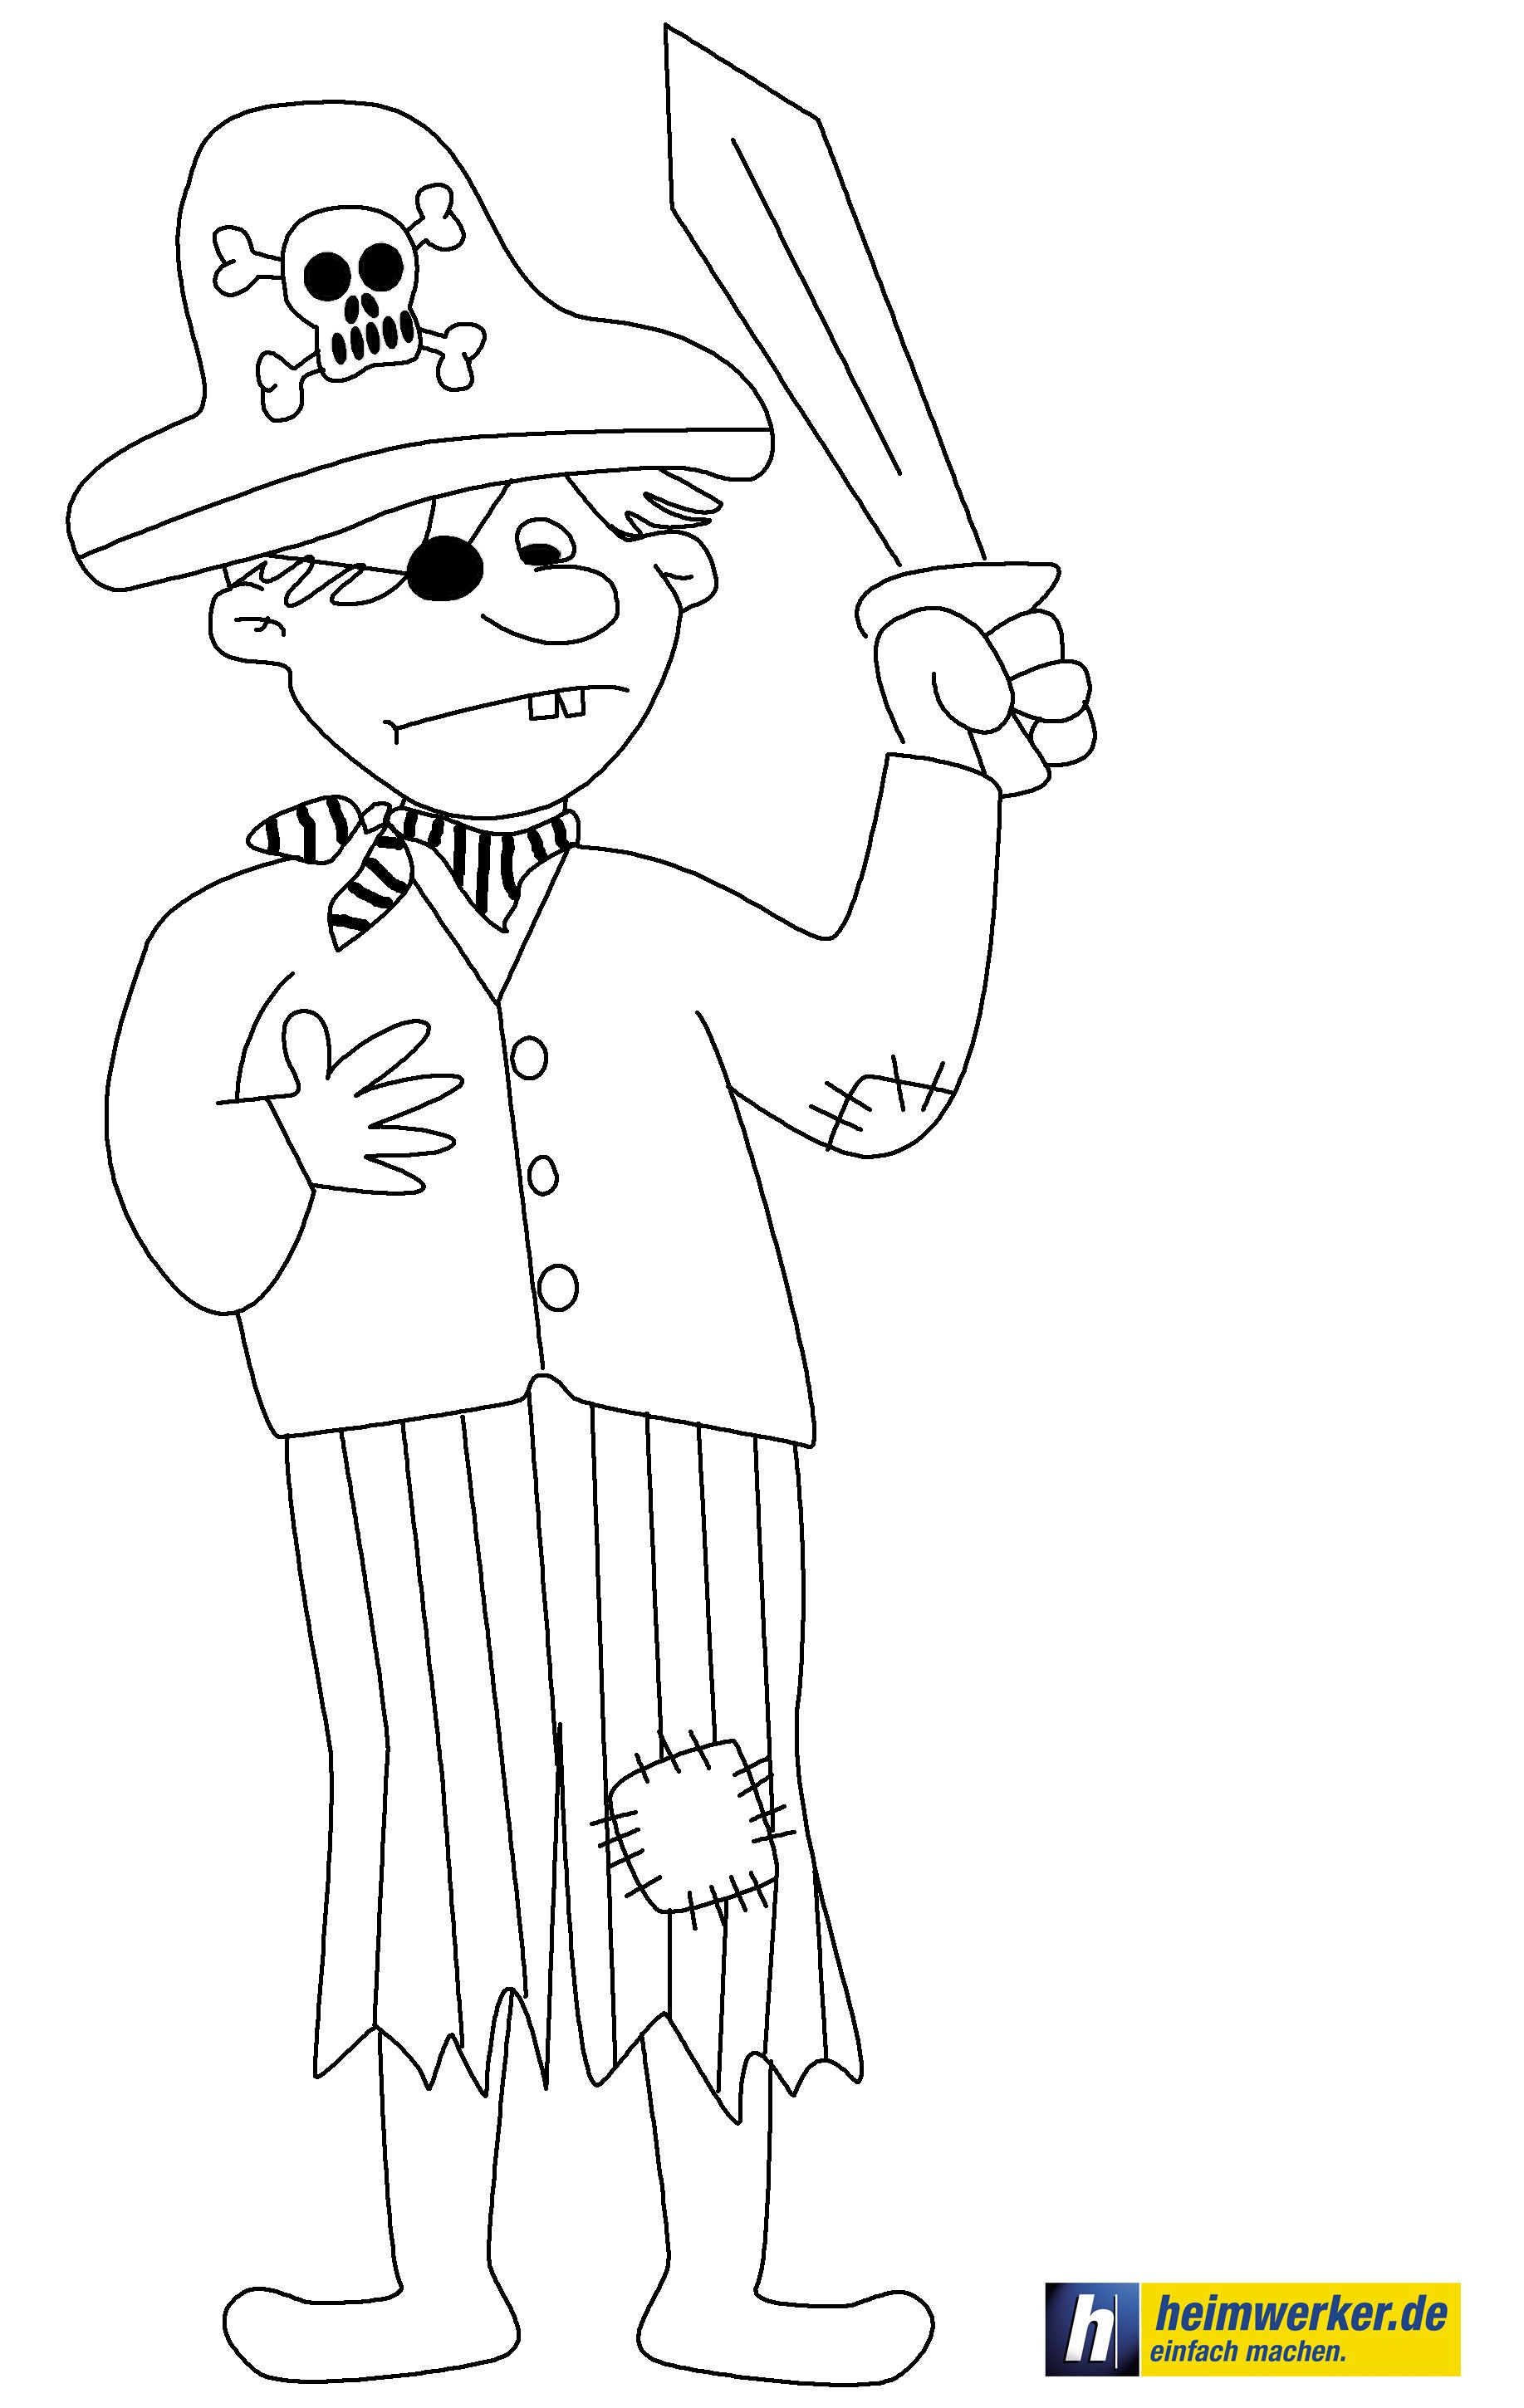 Pirate Coloring Page Piraten Ausmalbild Coloring Sheets Coloring